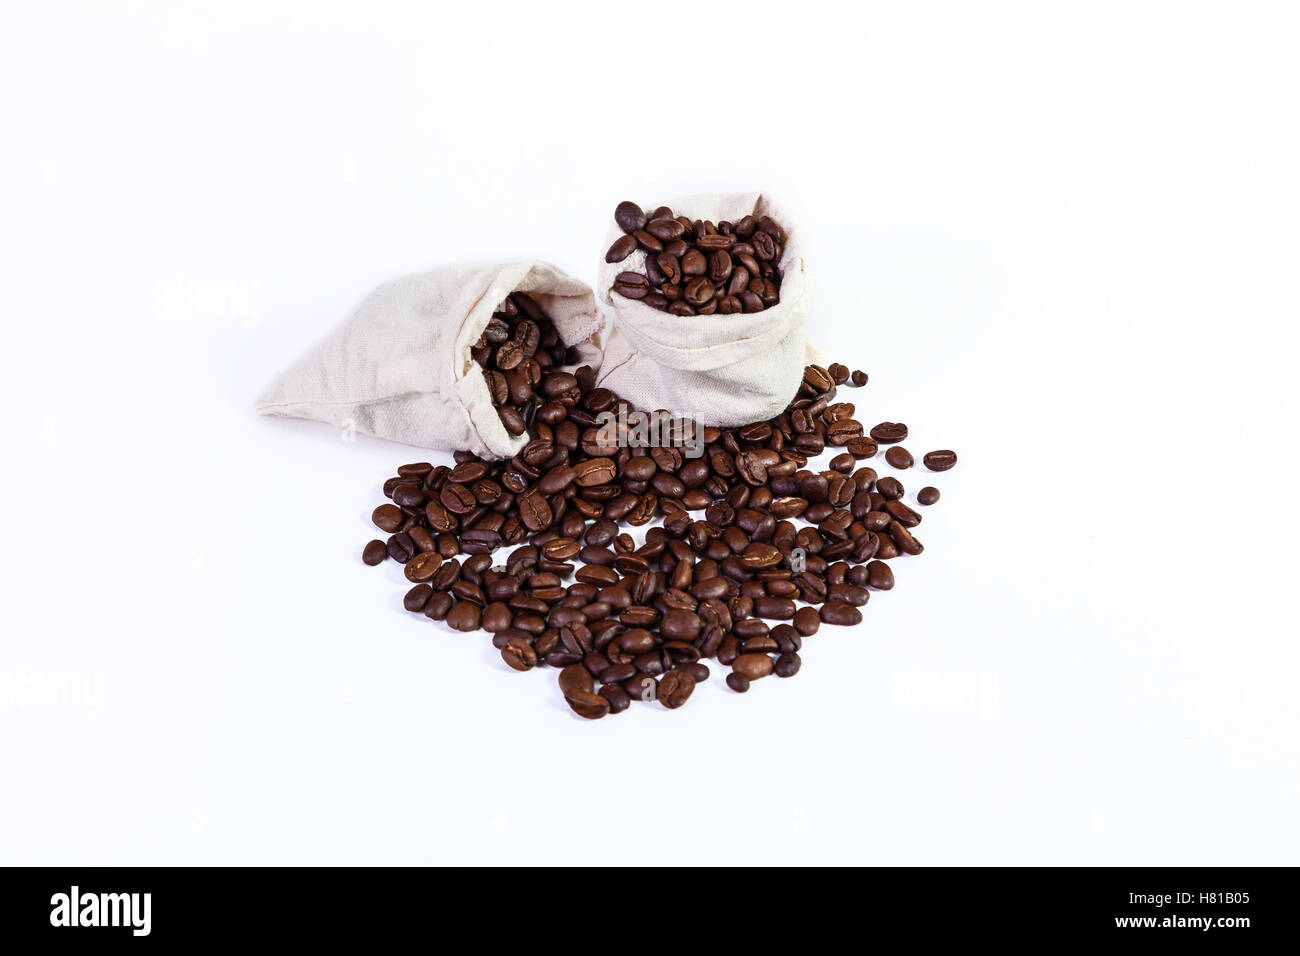 roasted coffee beans in a rag bags, roasted coffee beans on a white background. - Stock Image